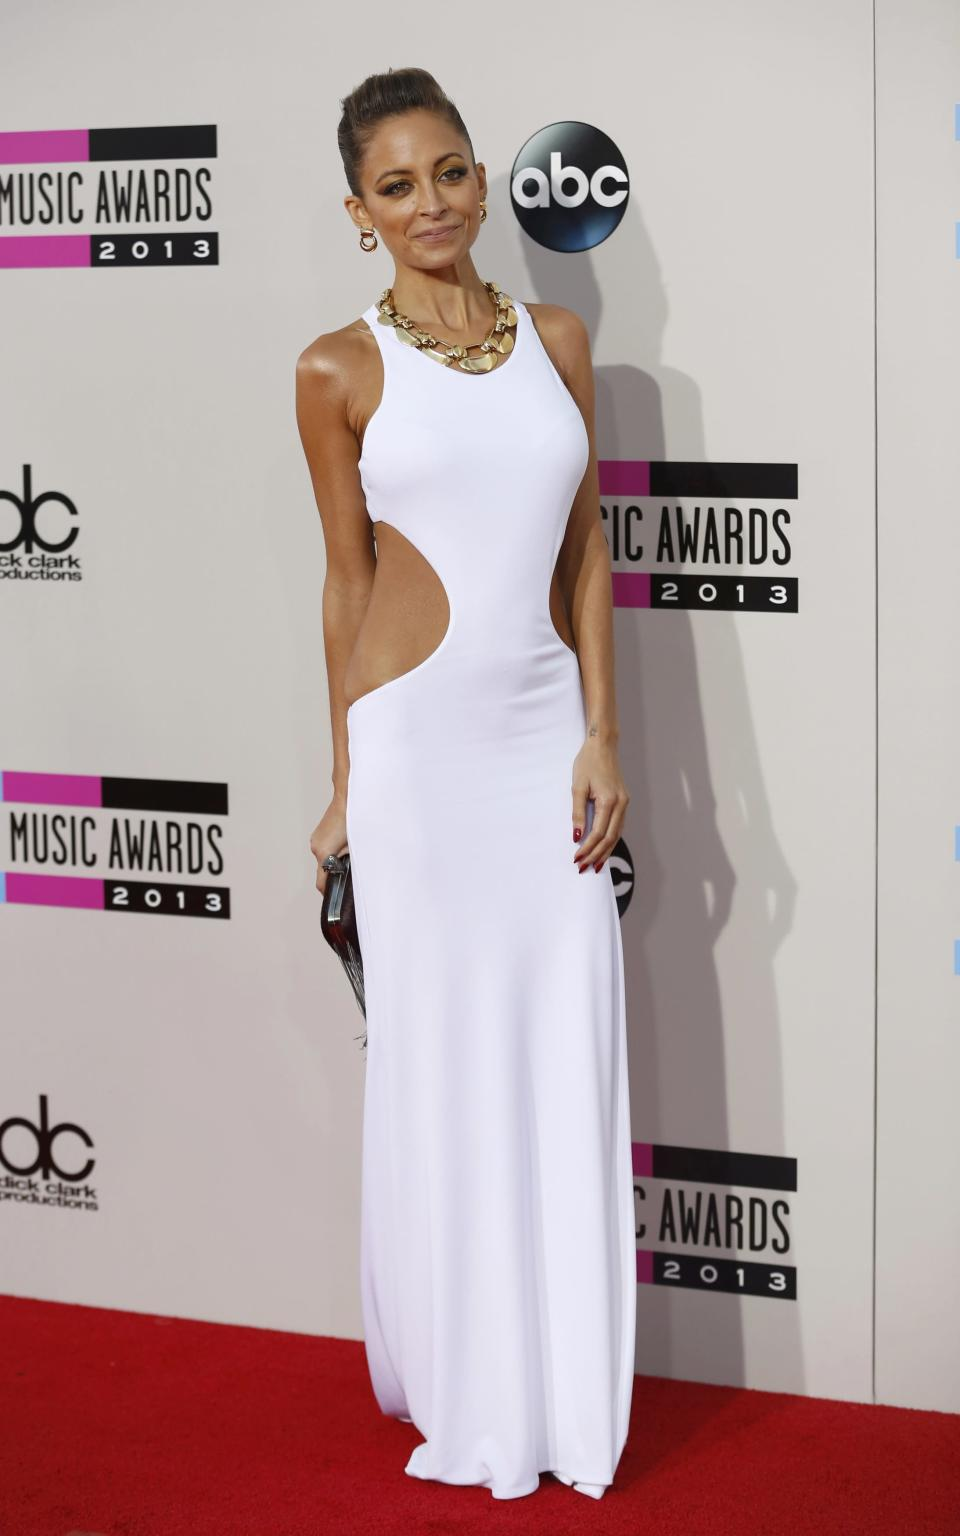 Nicole Richie has gained a reputation for taking risks on the red carpet, but this slim white dress with the too-large side cutouts doesn't flatter the slender fashionista's boyish figure at all. From the shoulders up, Richie looks good, but the rest of the dress seems ill-fitting. REUTERS/Mario Anzuoni (UNITED STATES - TAGS: ENTERTAINMENT)(AMA-ARRIVALS)